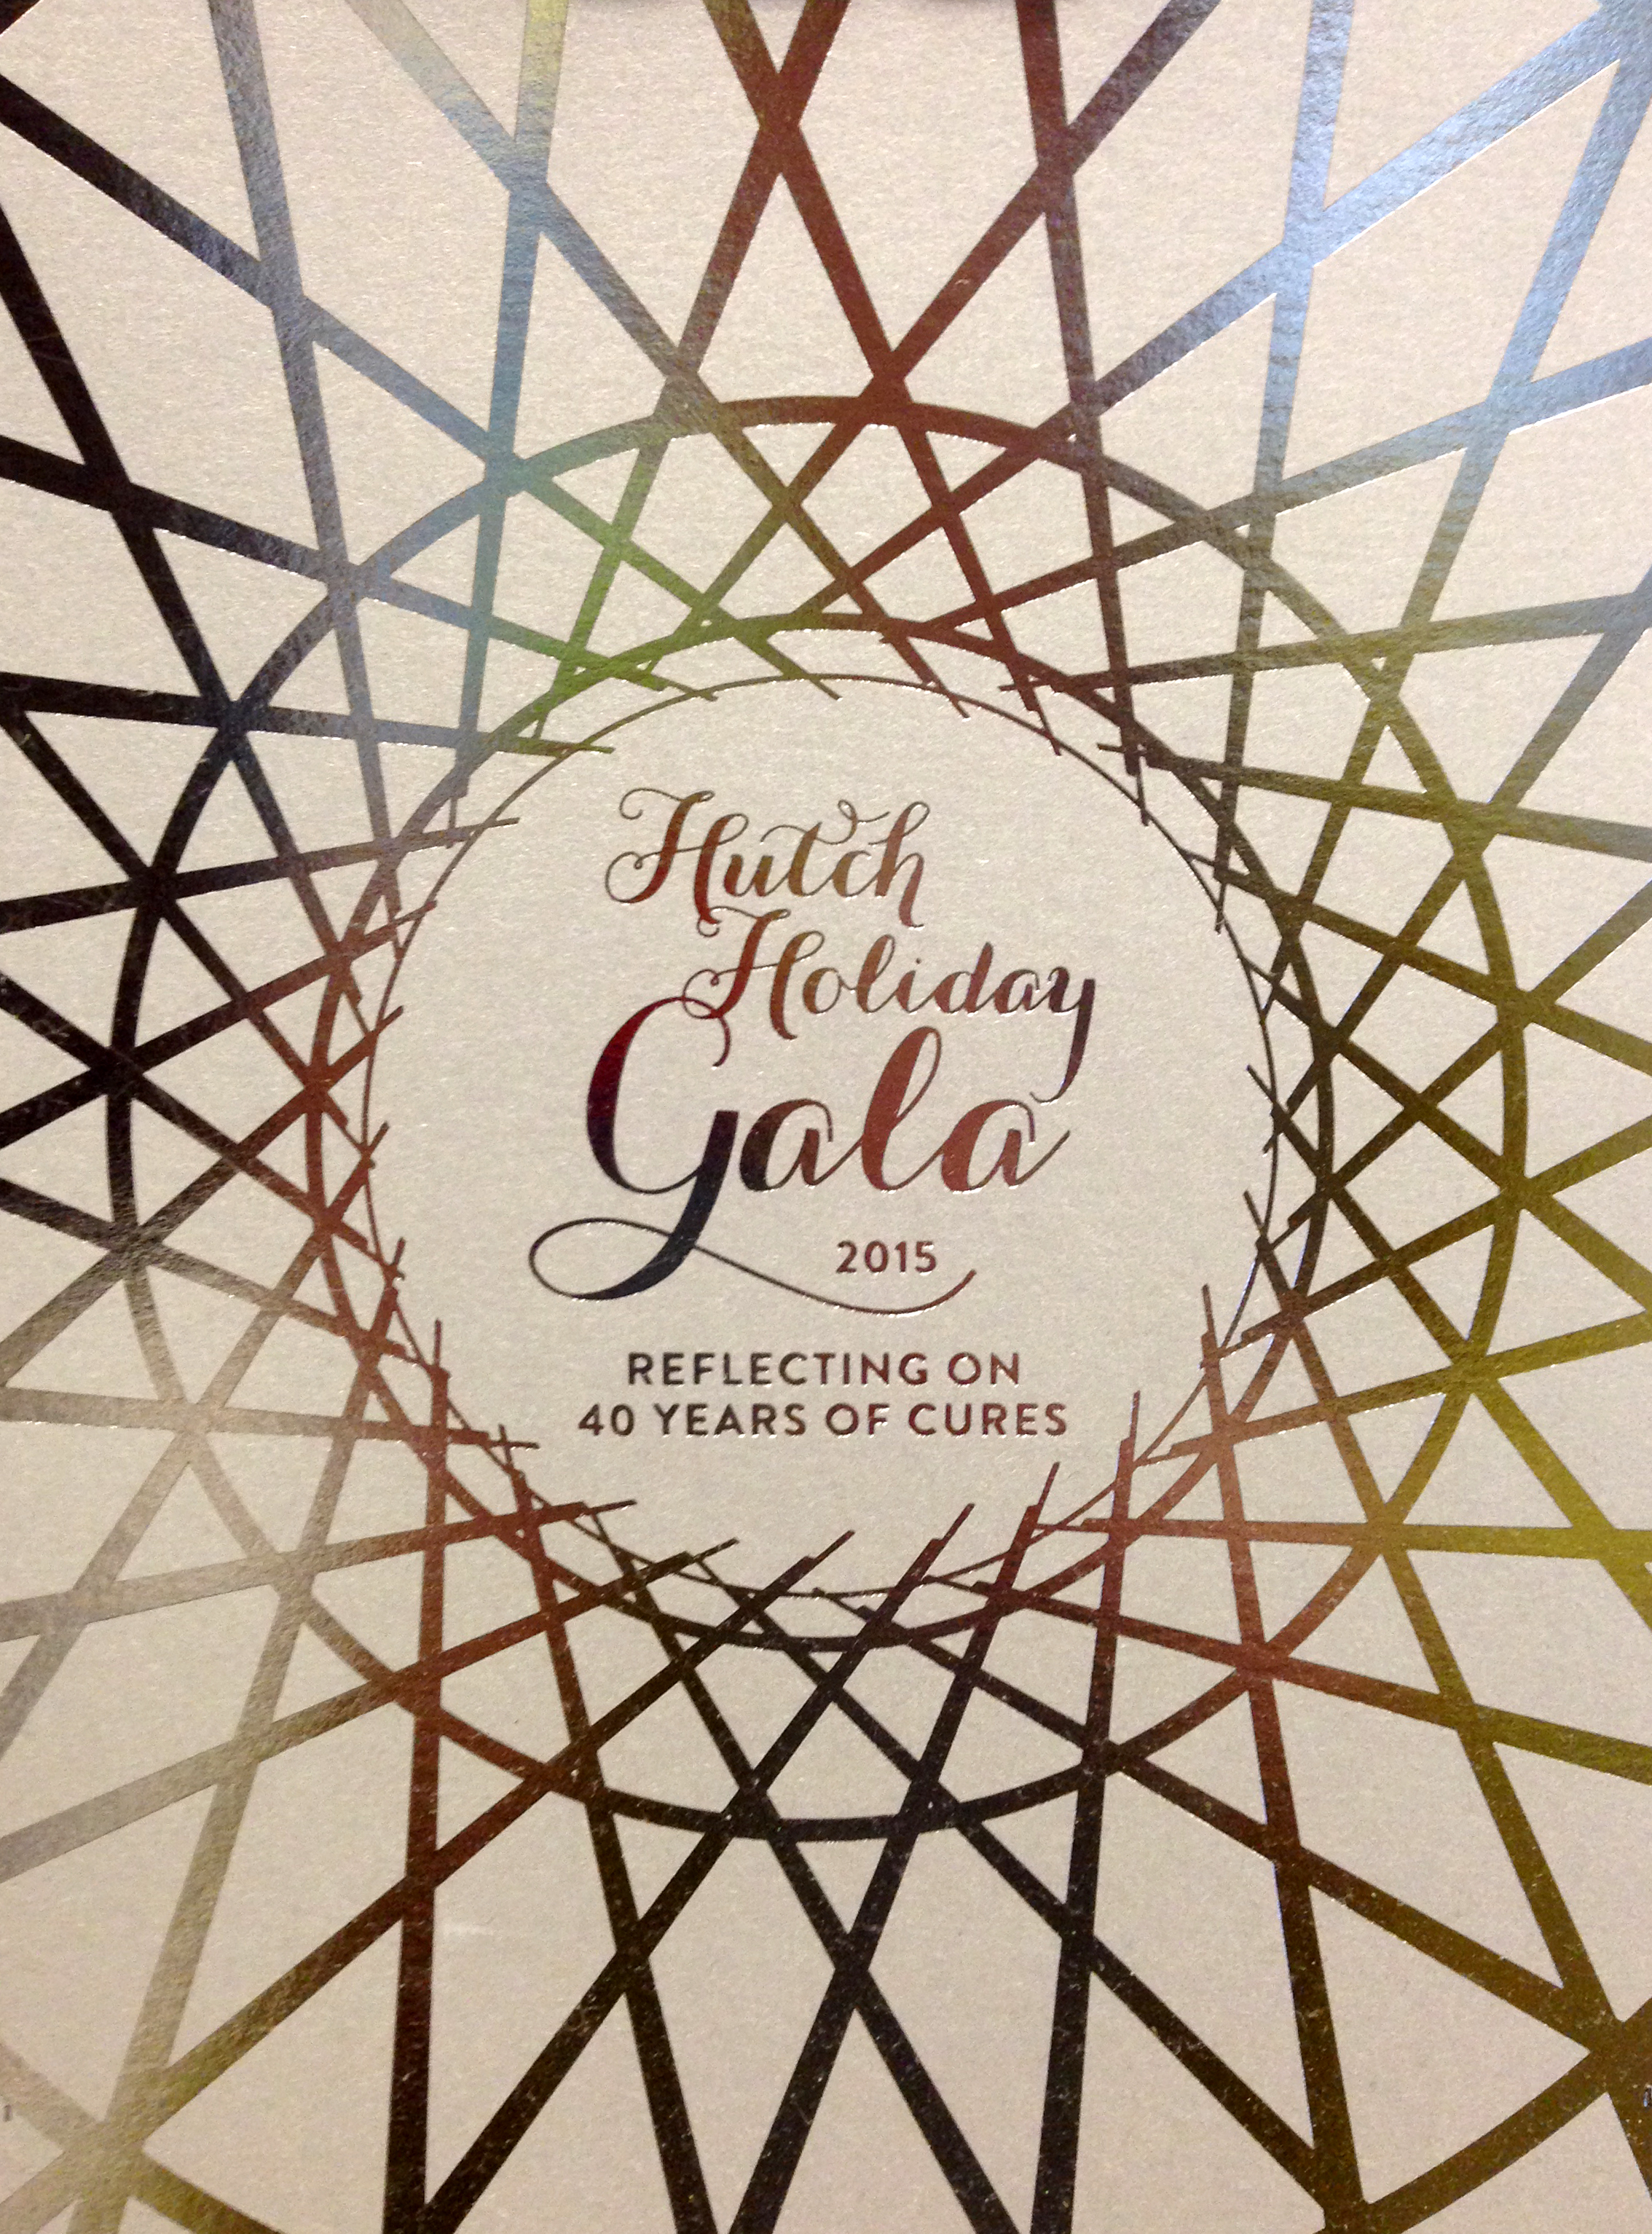 2015 Hutch Holiday Gala